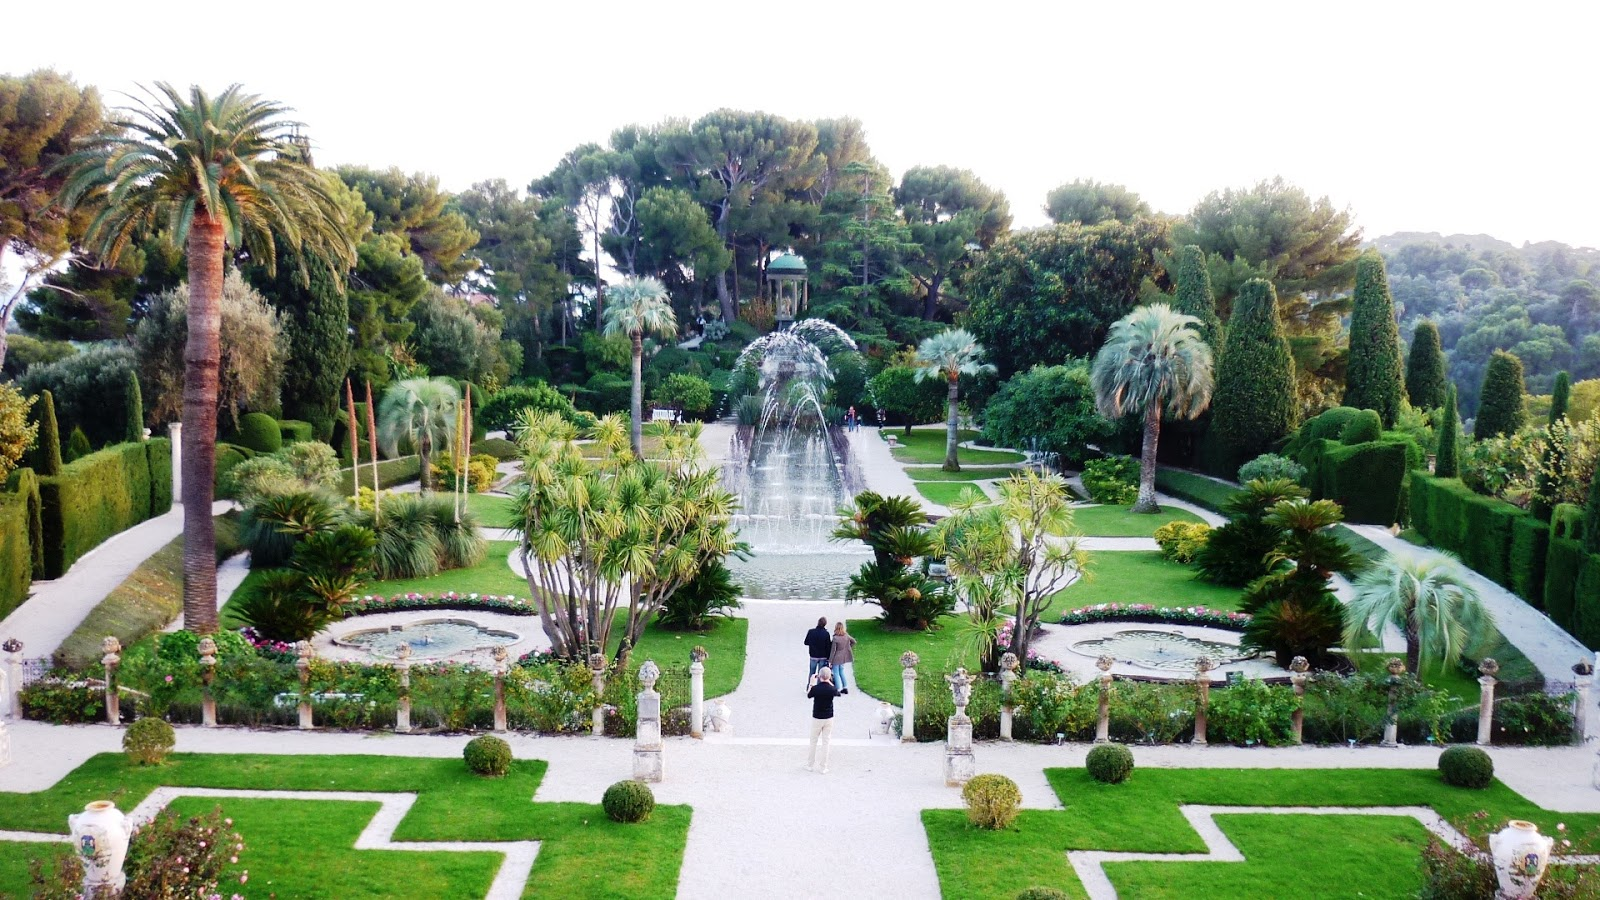 Bensozia the gardens of the villa ephrussi de rothschild for Gardens and villa